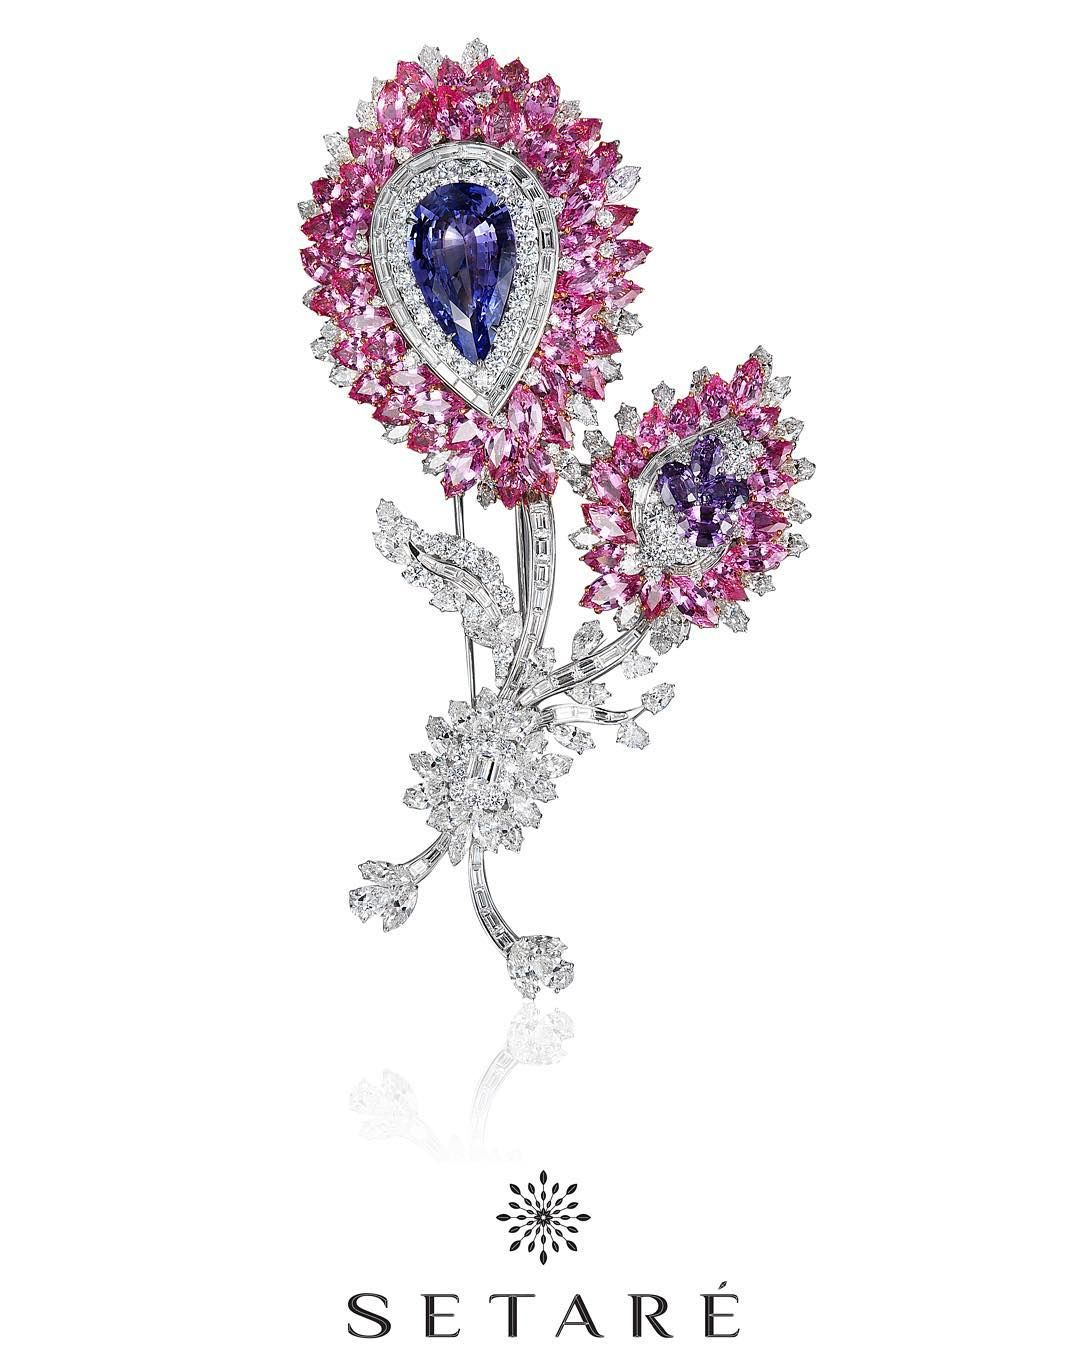 setarediamondsA gorgeous hand crafted brooch centered upon a special 20 carat pastel violet sapphire. #Art #Setare' #Sapphire #Diamonds #violet